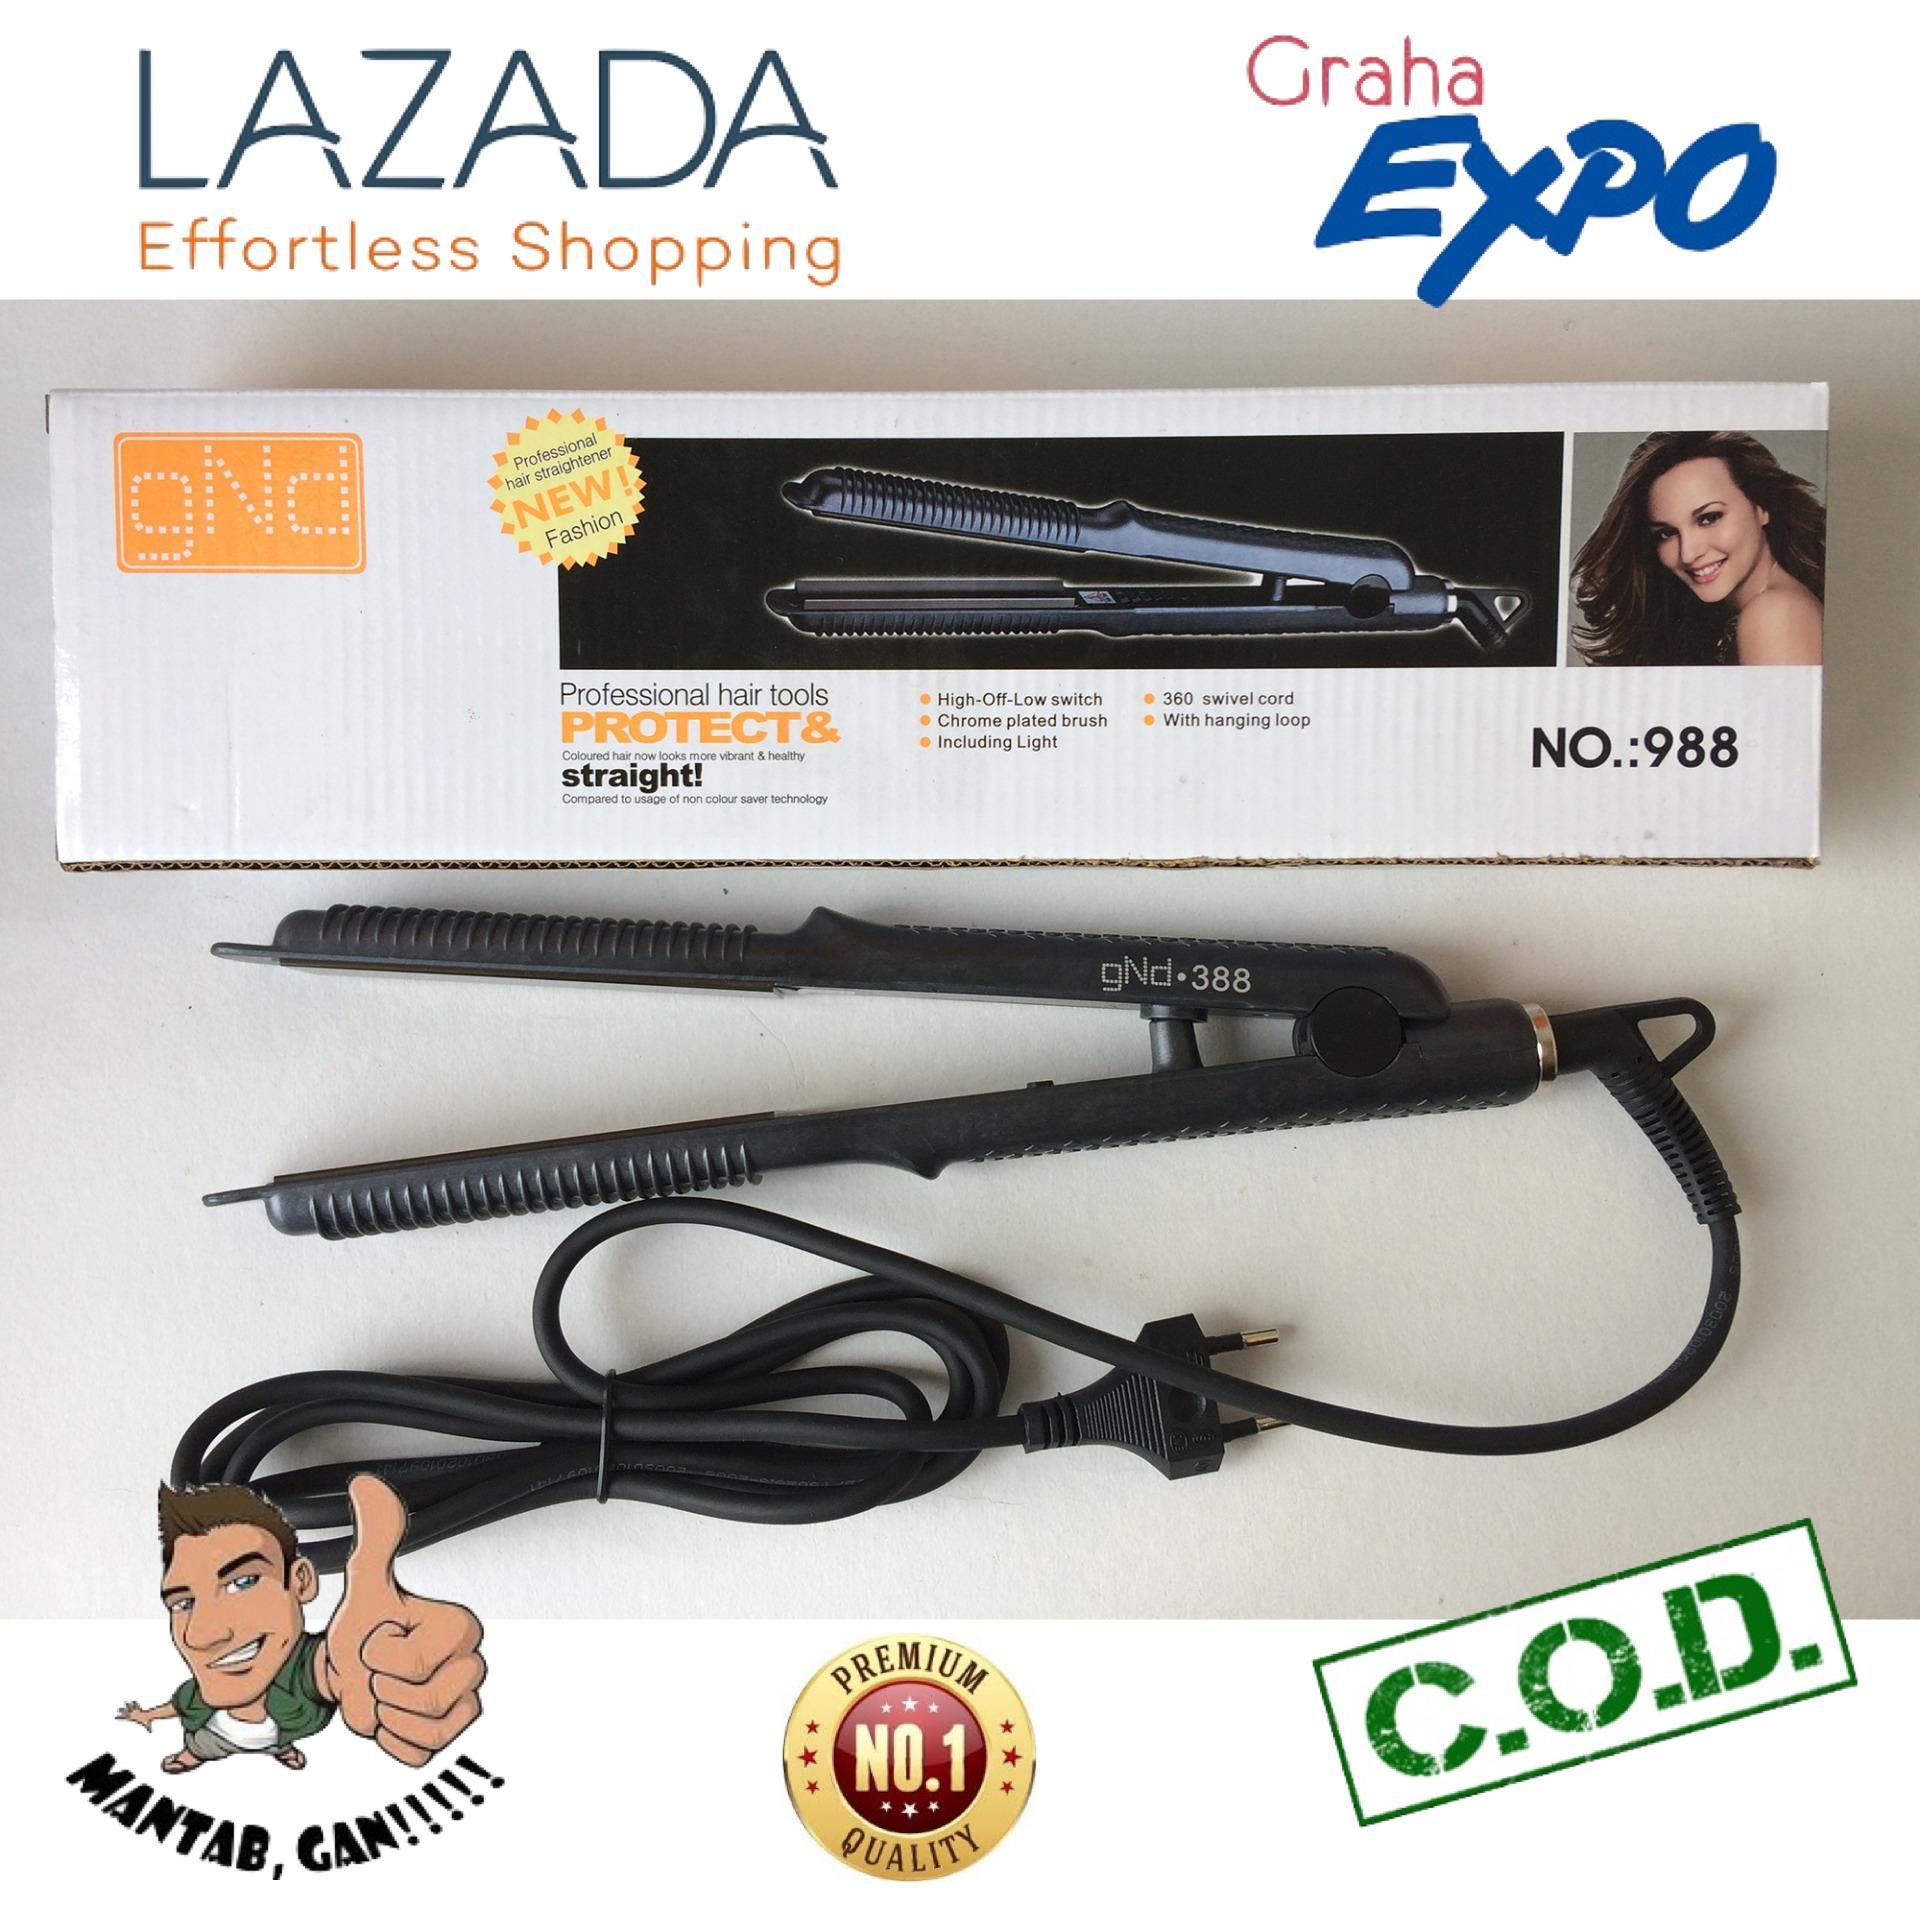 GND Catok 2in1 Rambut Lurus Ikal Keriting Hair Straightener & Curly Catokan - Hitam Laz COD Graha Expo